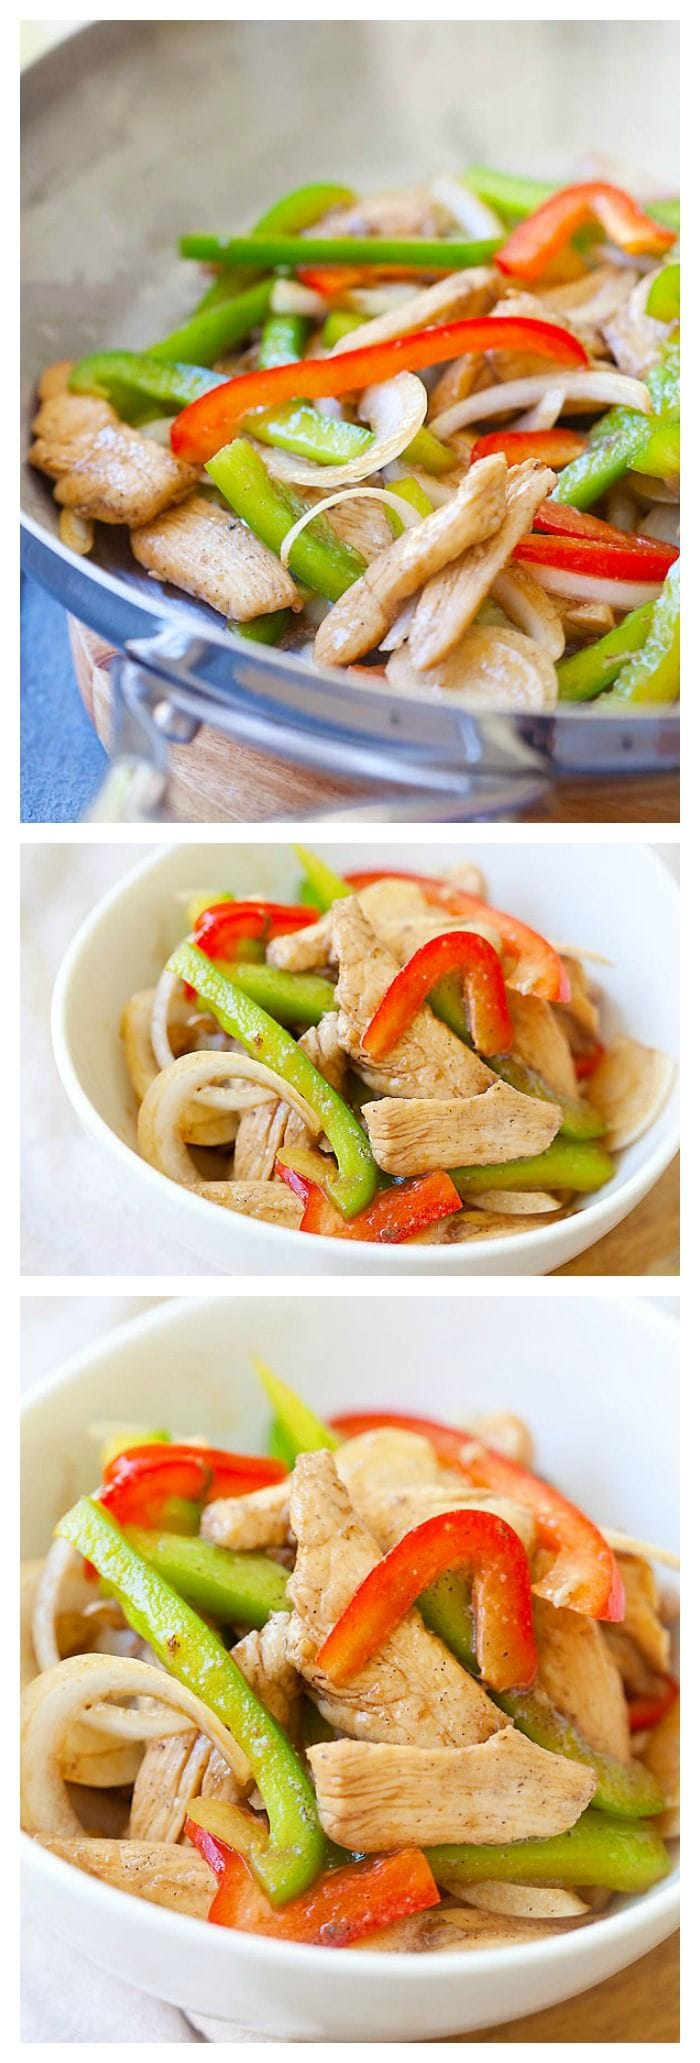 Black Pepper Chicken Recipe